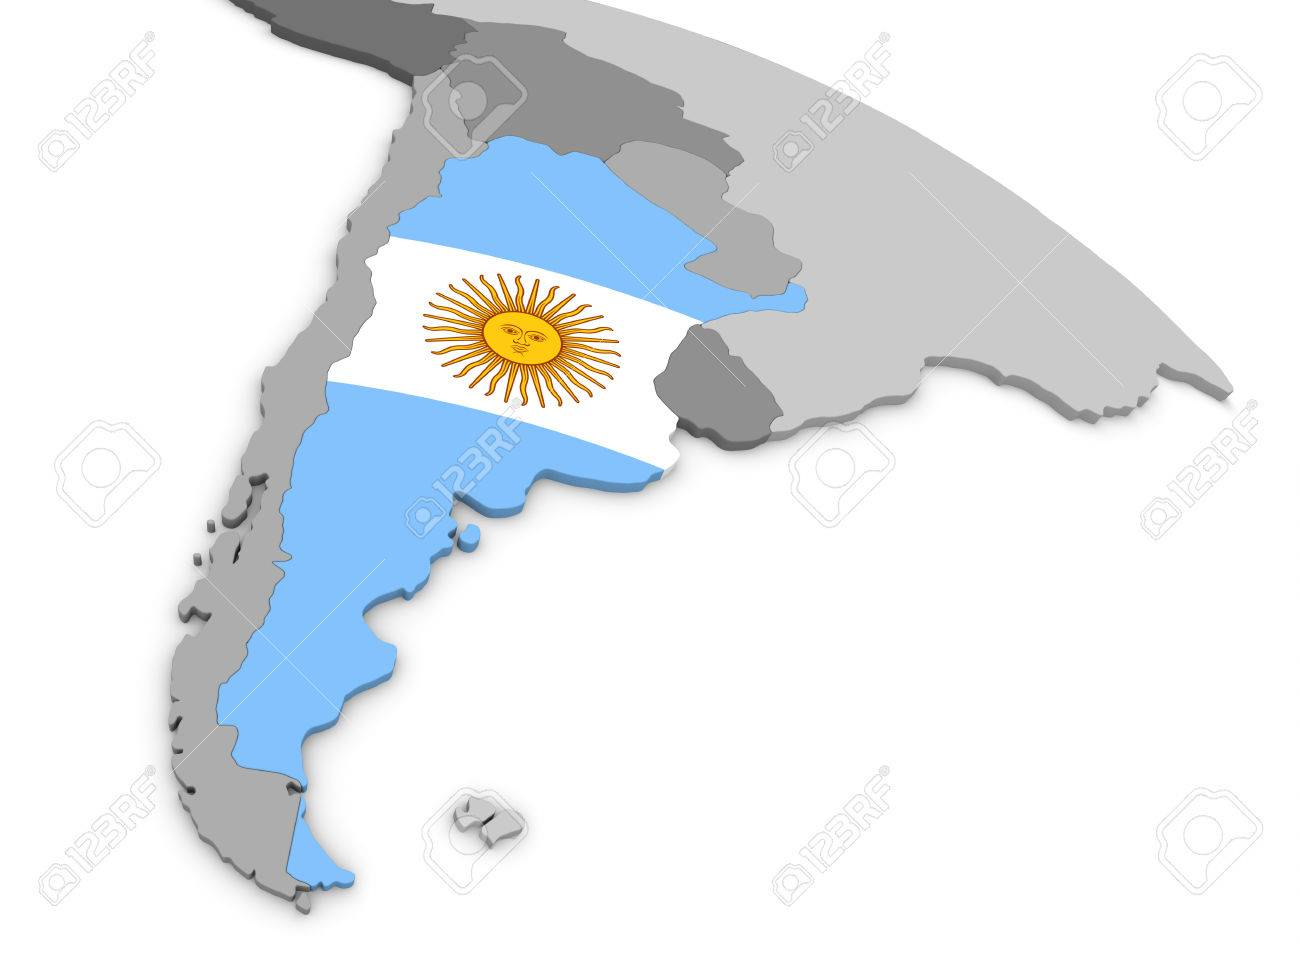 Map Of Argentina With Embedded National Flag D Illustration - Map of argentina